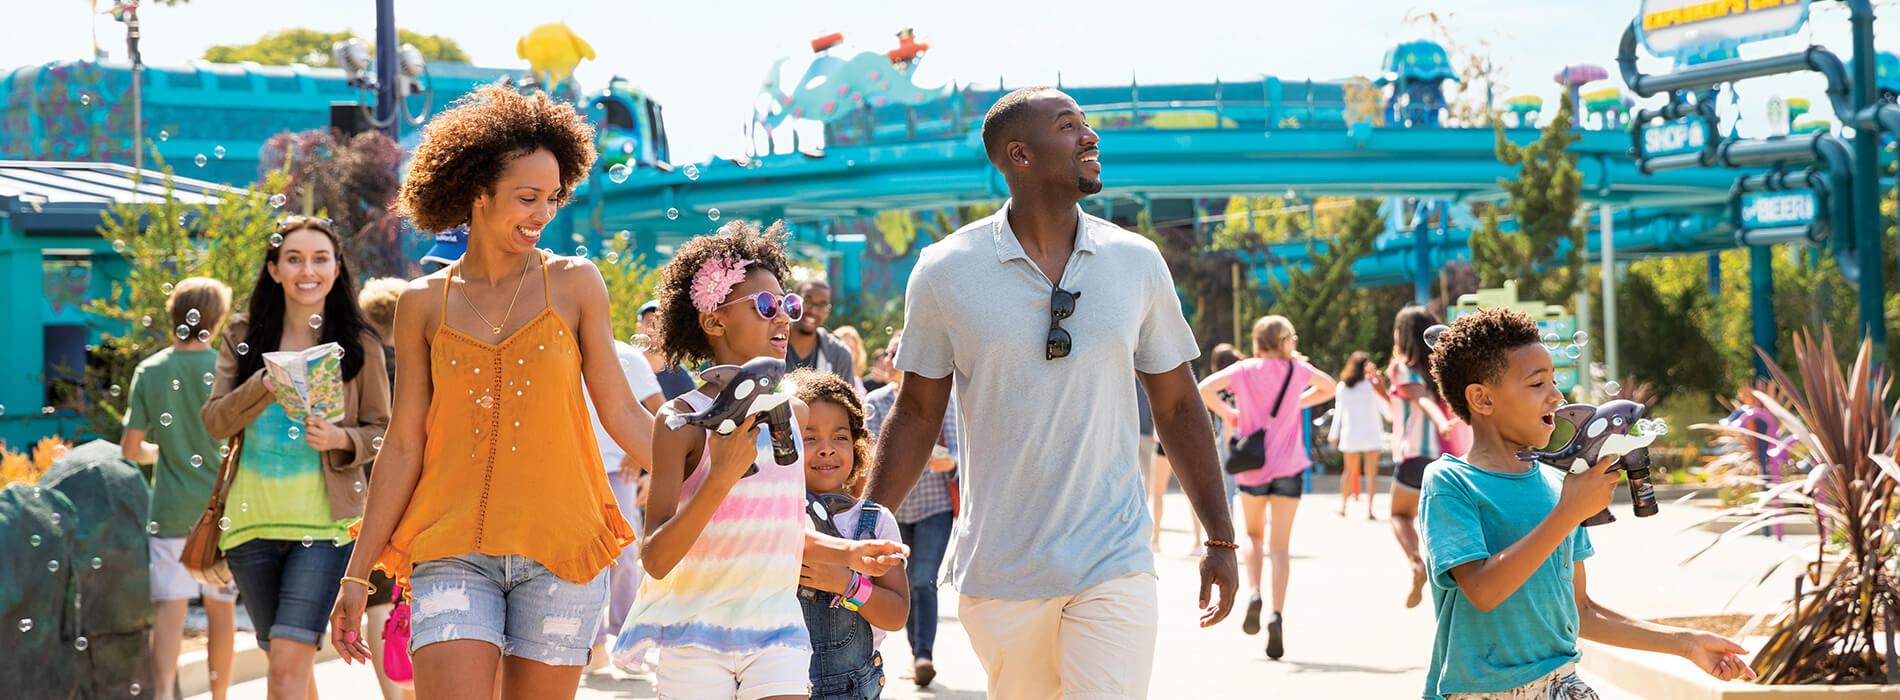 SeaWorld San Diego Tickets and Passes Offers